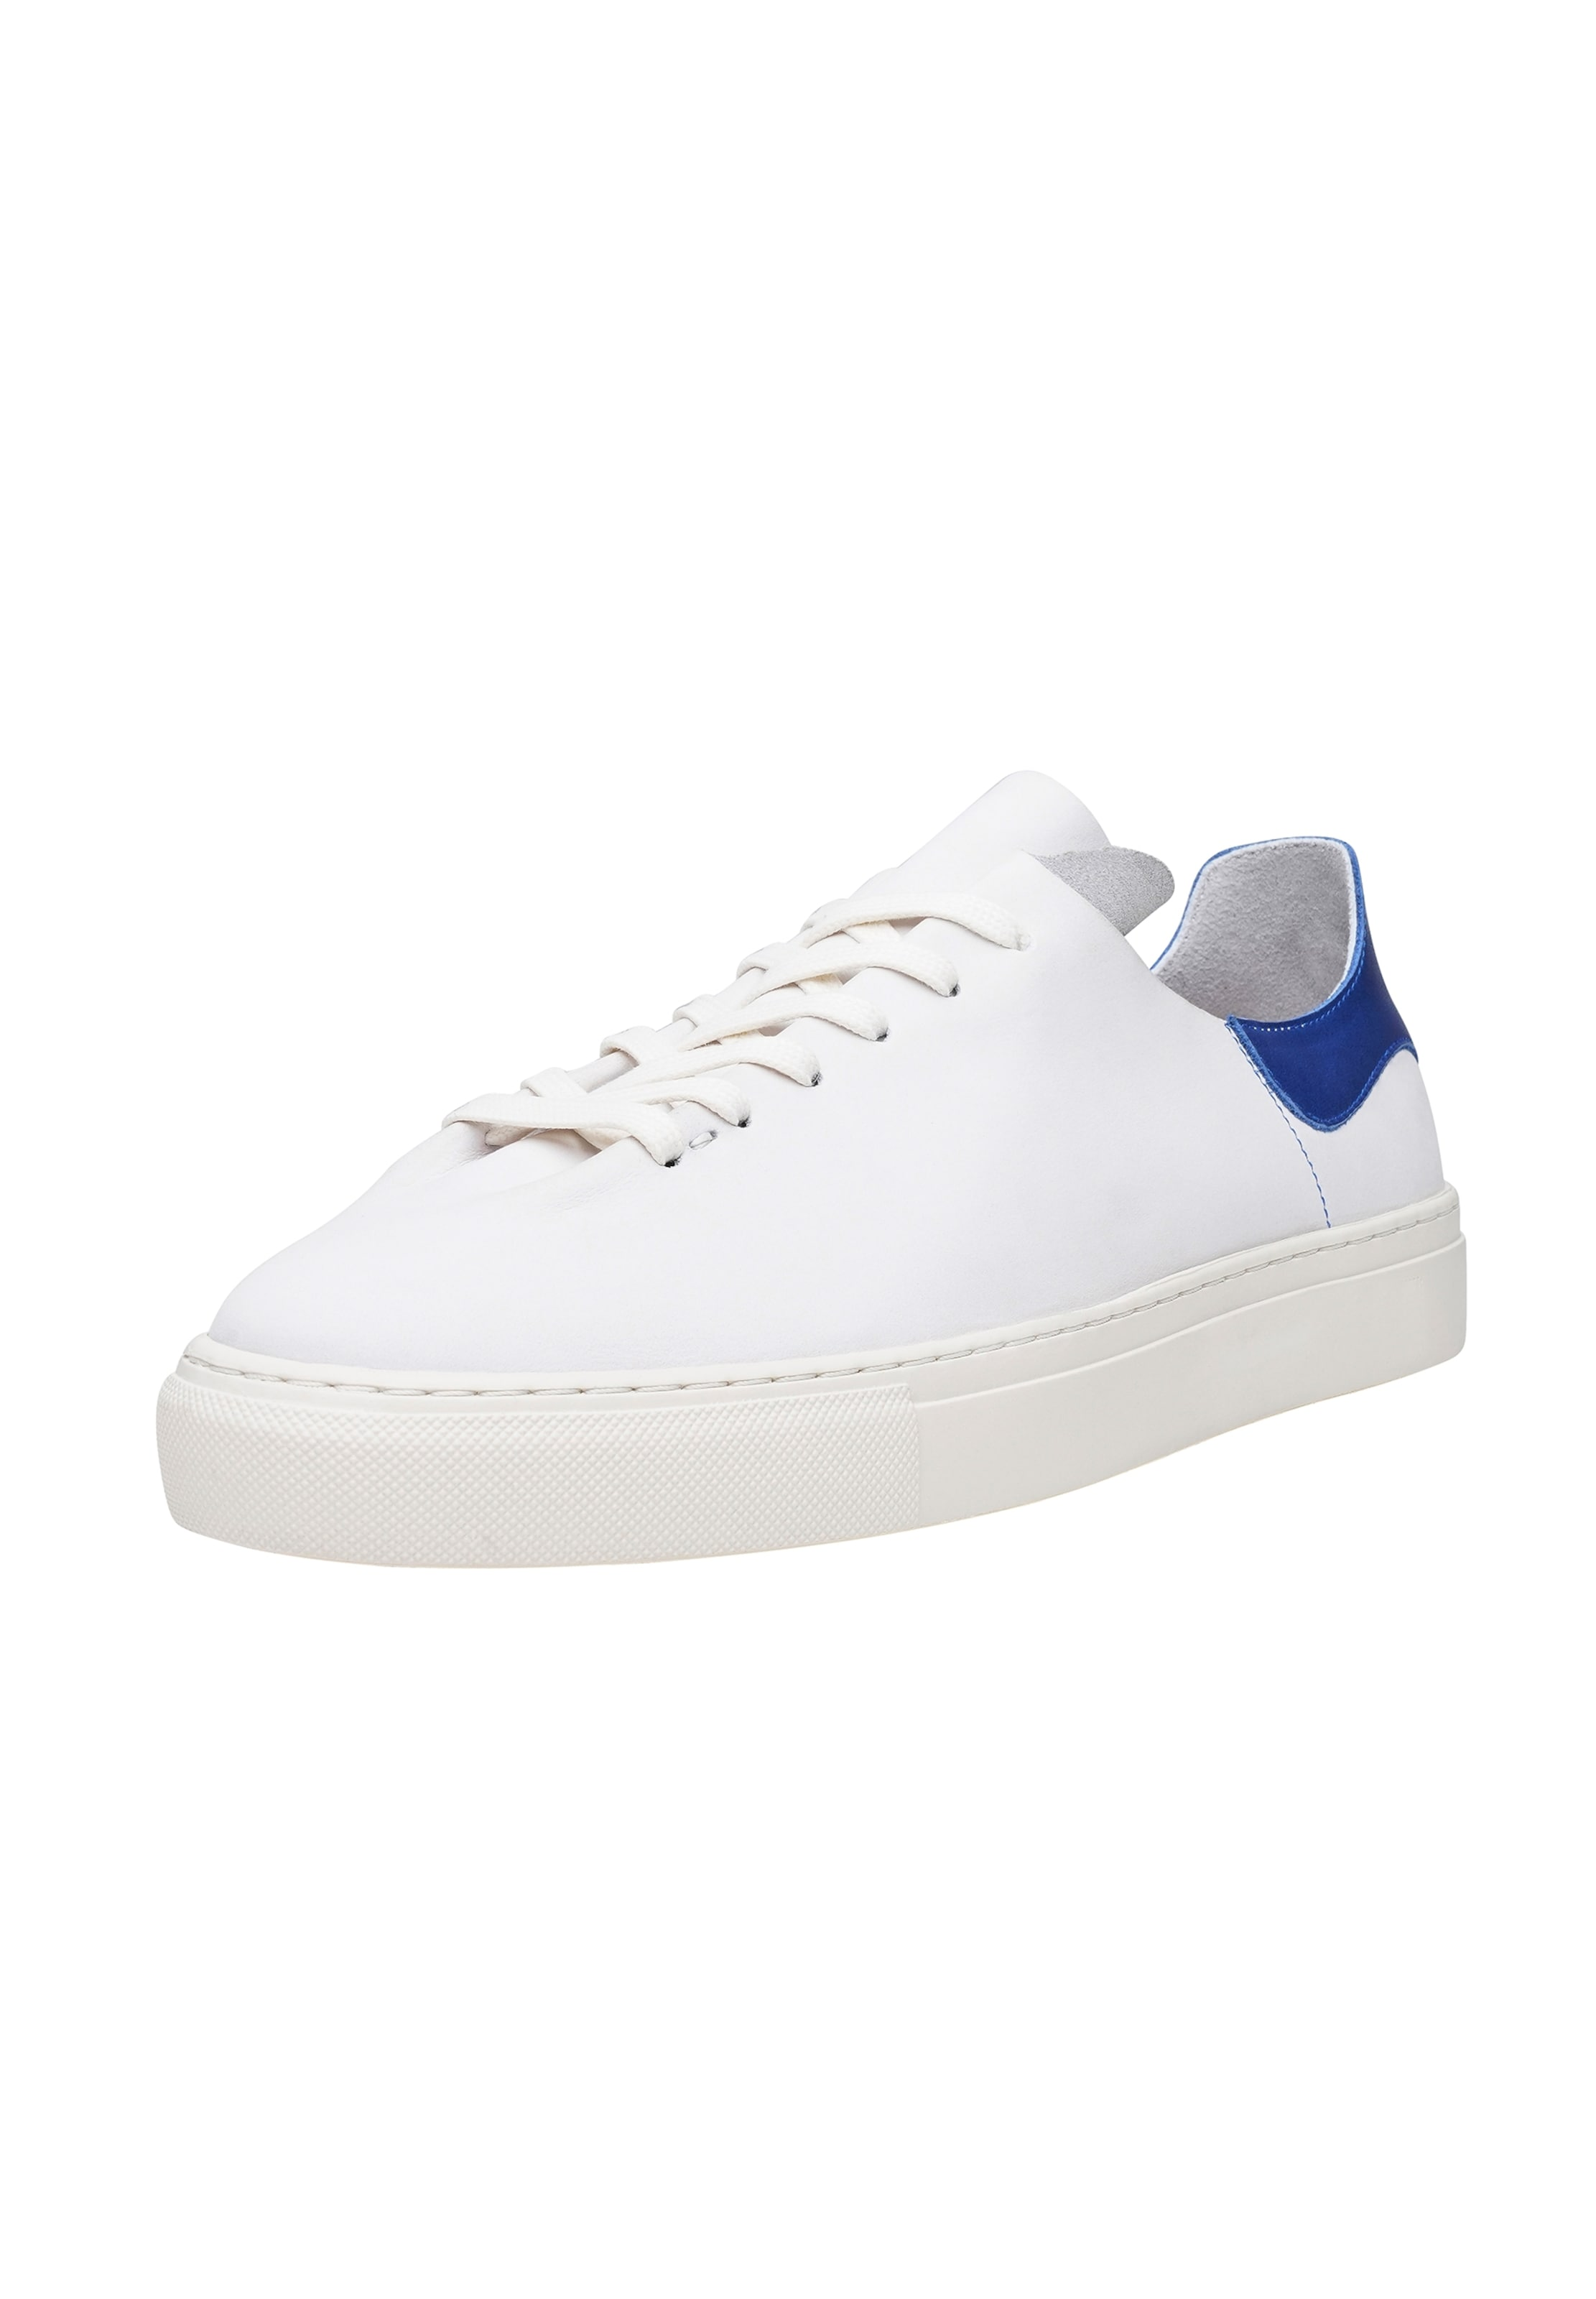 'no76 In Ms' BlauWeiß Shoepassion Sneaker f7gb6yY